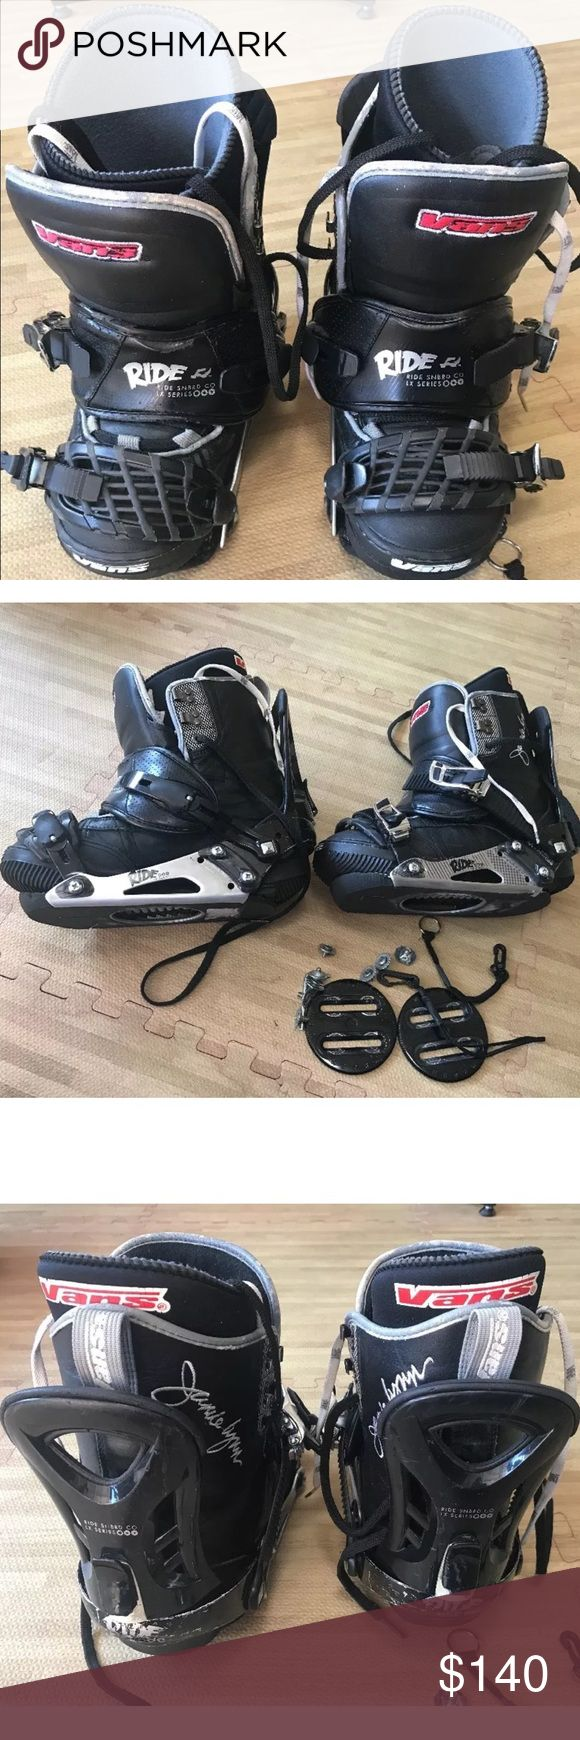 Selling this Vans Jamie Lynn snowboard boots & ride bindings on Poshmark! My username is: whalesand. #shopmycloset #poshmark #fashion #shopping #style #forsale #Vans #Other